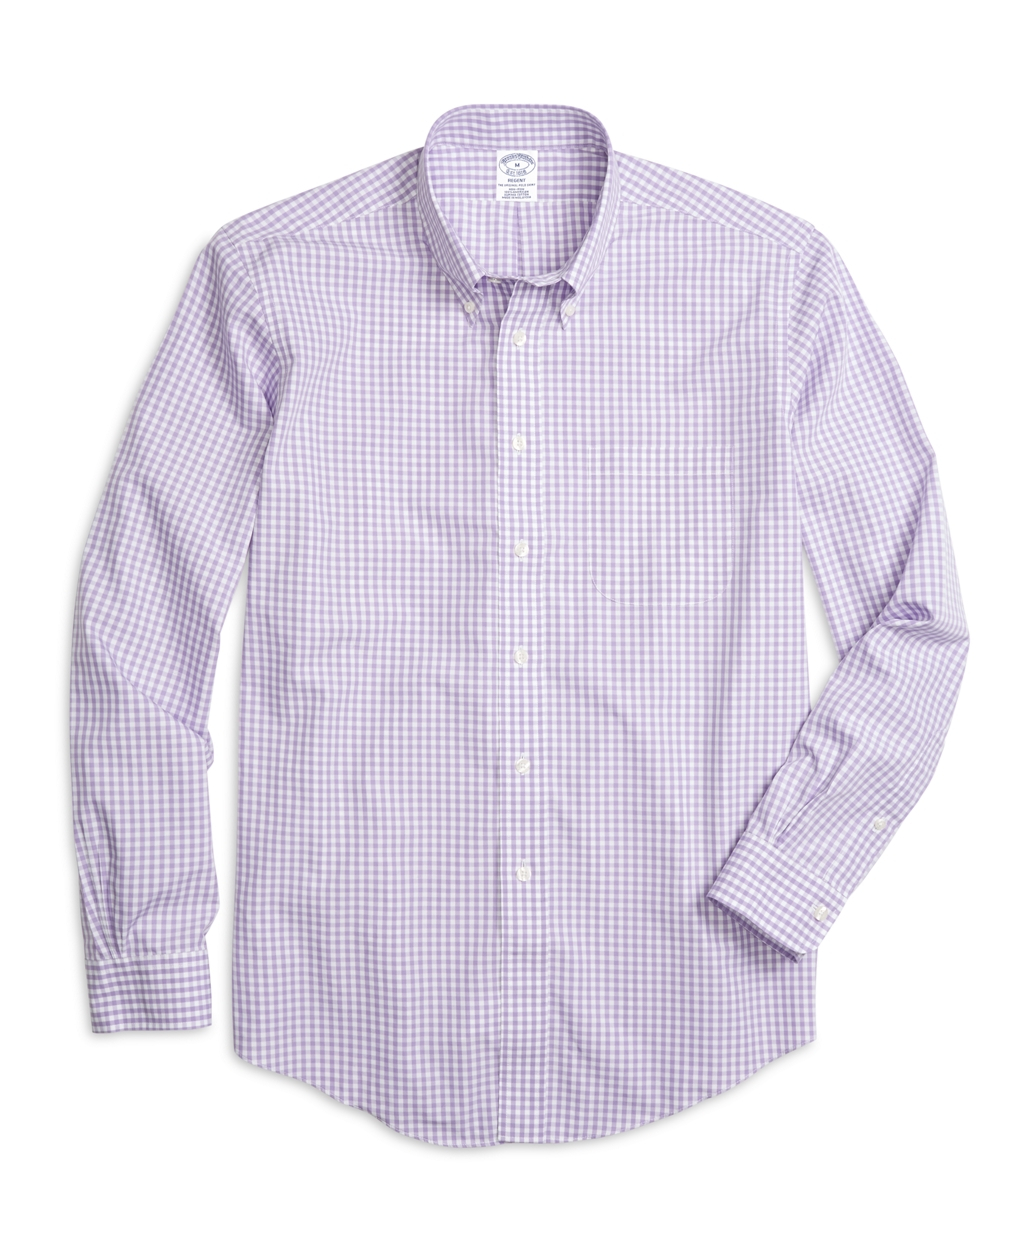 Brooks brothers non iron regent fit gingham sport shirt in for Brooks brothers non iron shirts review